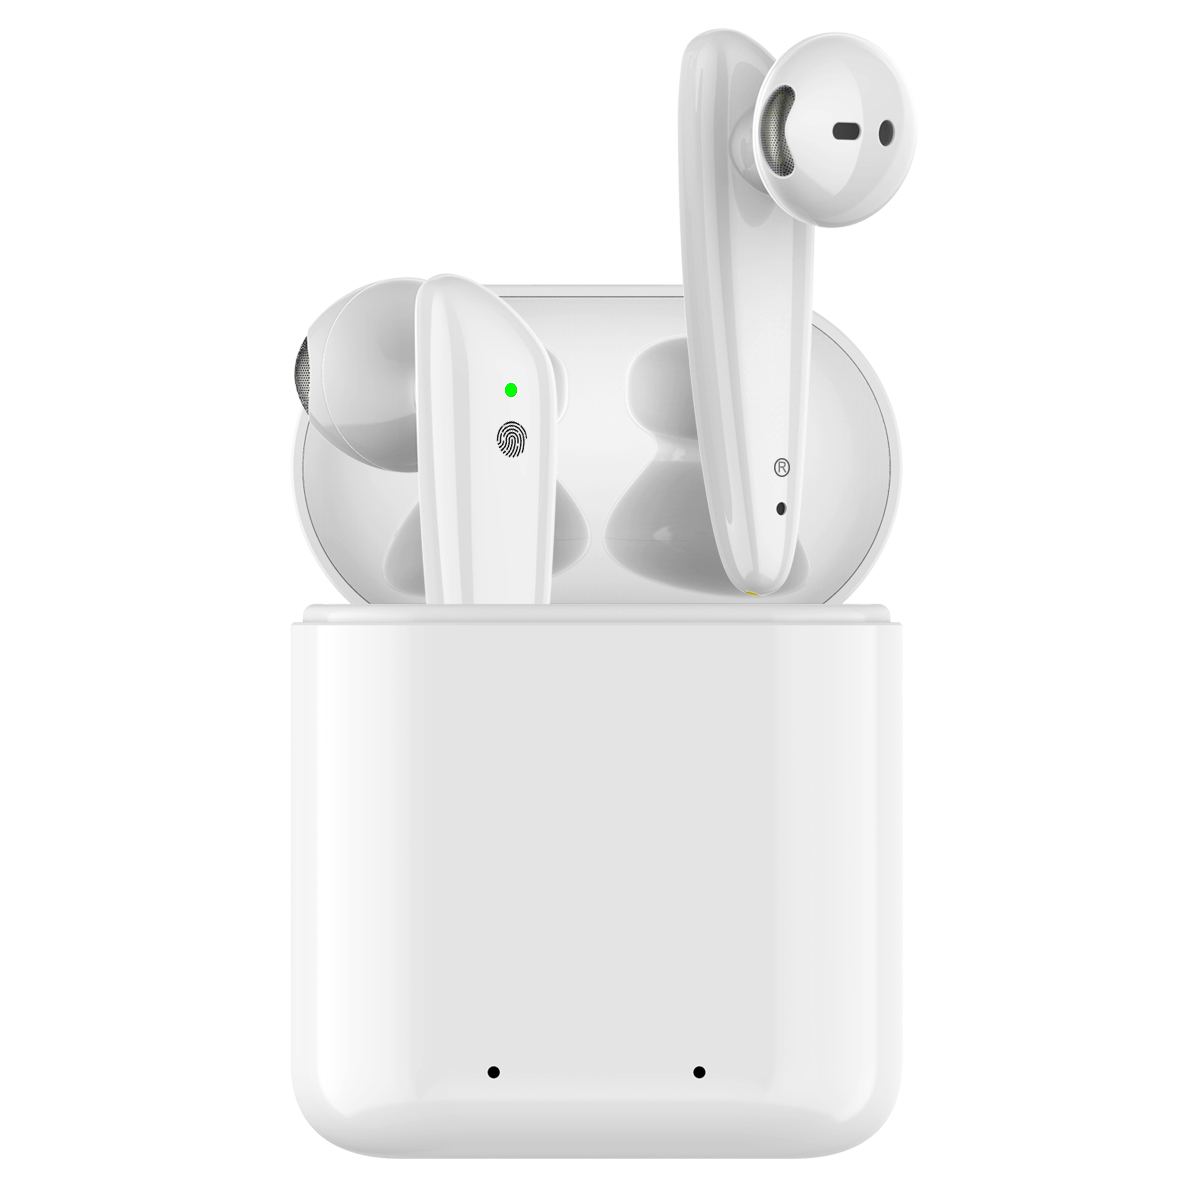 <font><b>2019</b></font> New <font><b>i18</b></font> <font><b>tws</b></font> Wireless Earphones Bluetooth 5.0 Infrared Smart Sensor IPX7 Waterproof Earphone Noise Cancelling Binaural Calls image